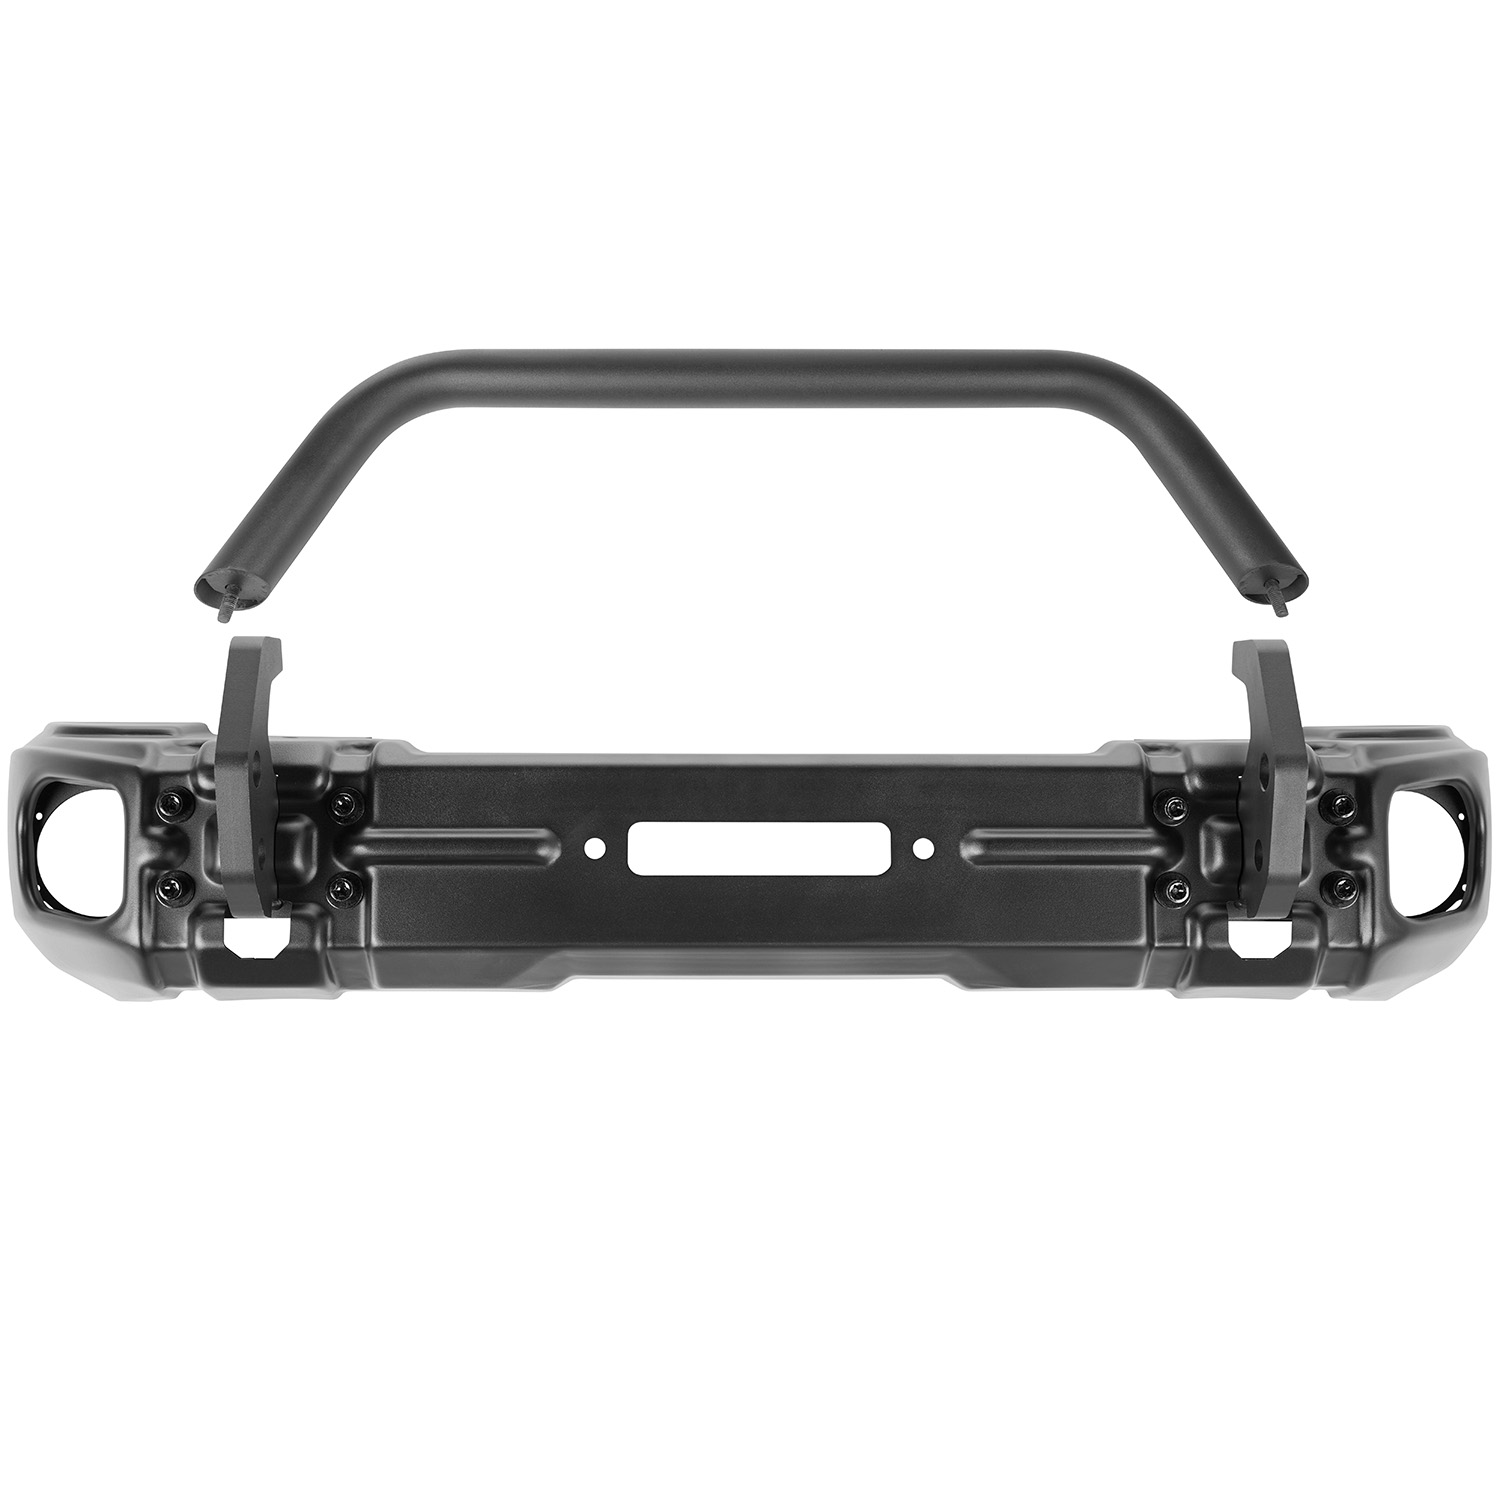 Arcus Front Bumper Set W/Overrider For 2007 To 2018 Jeep Wrangler JK x 11549.13